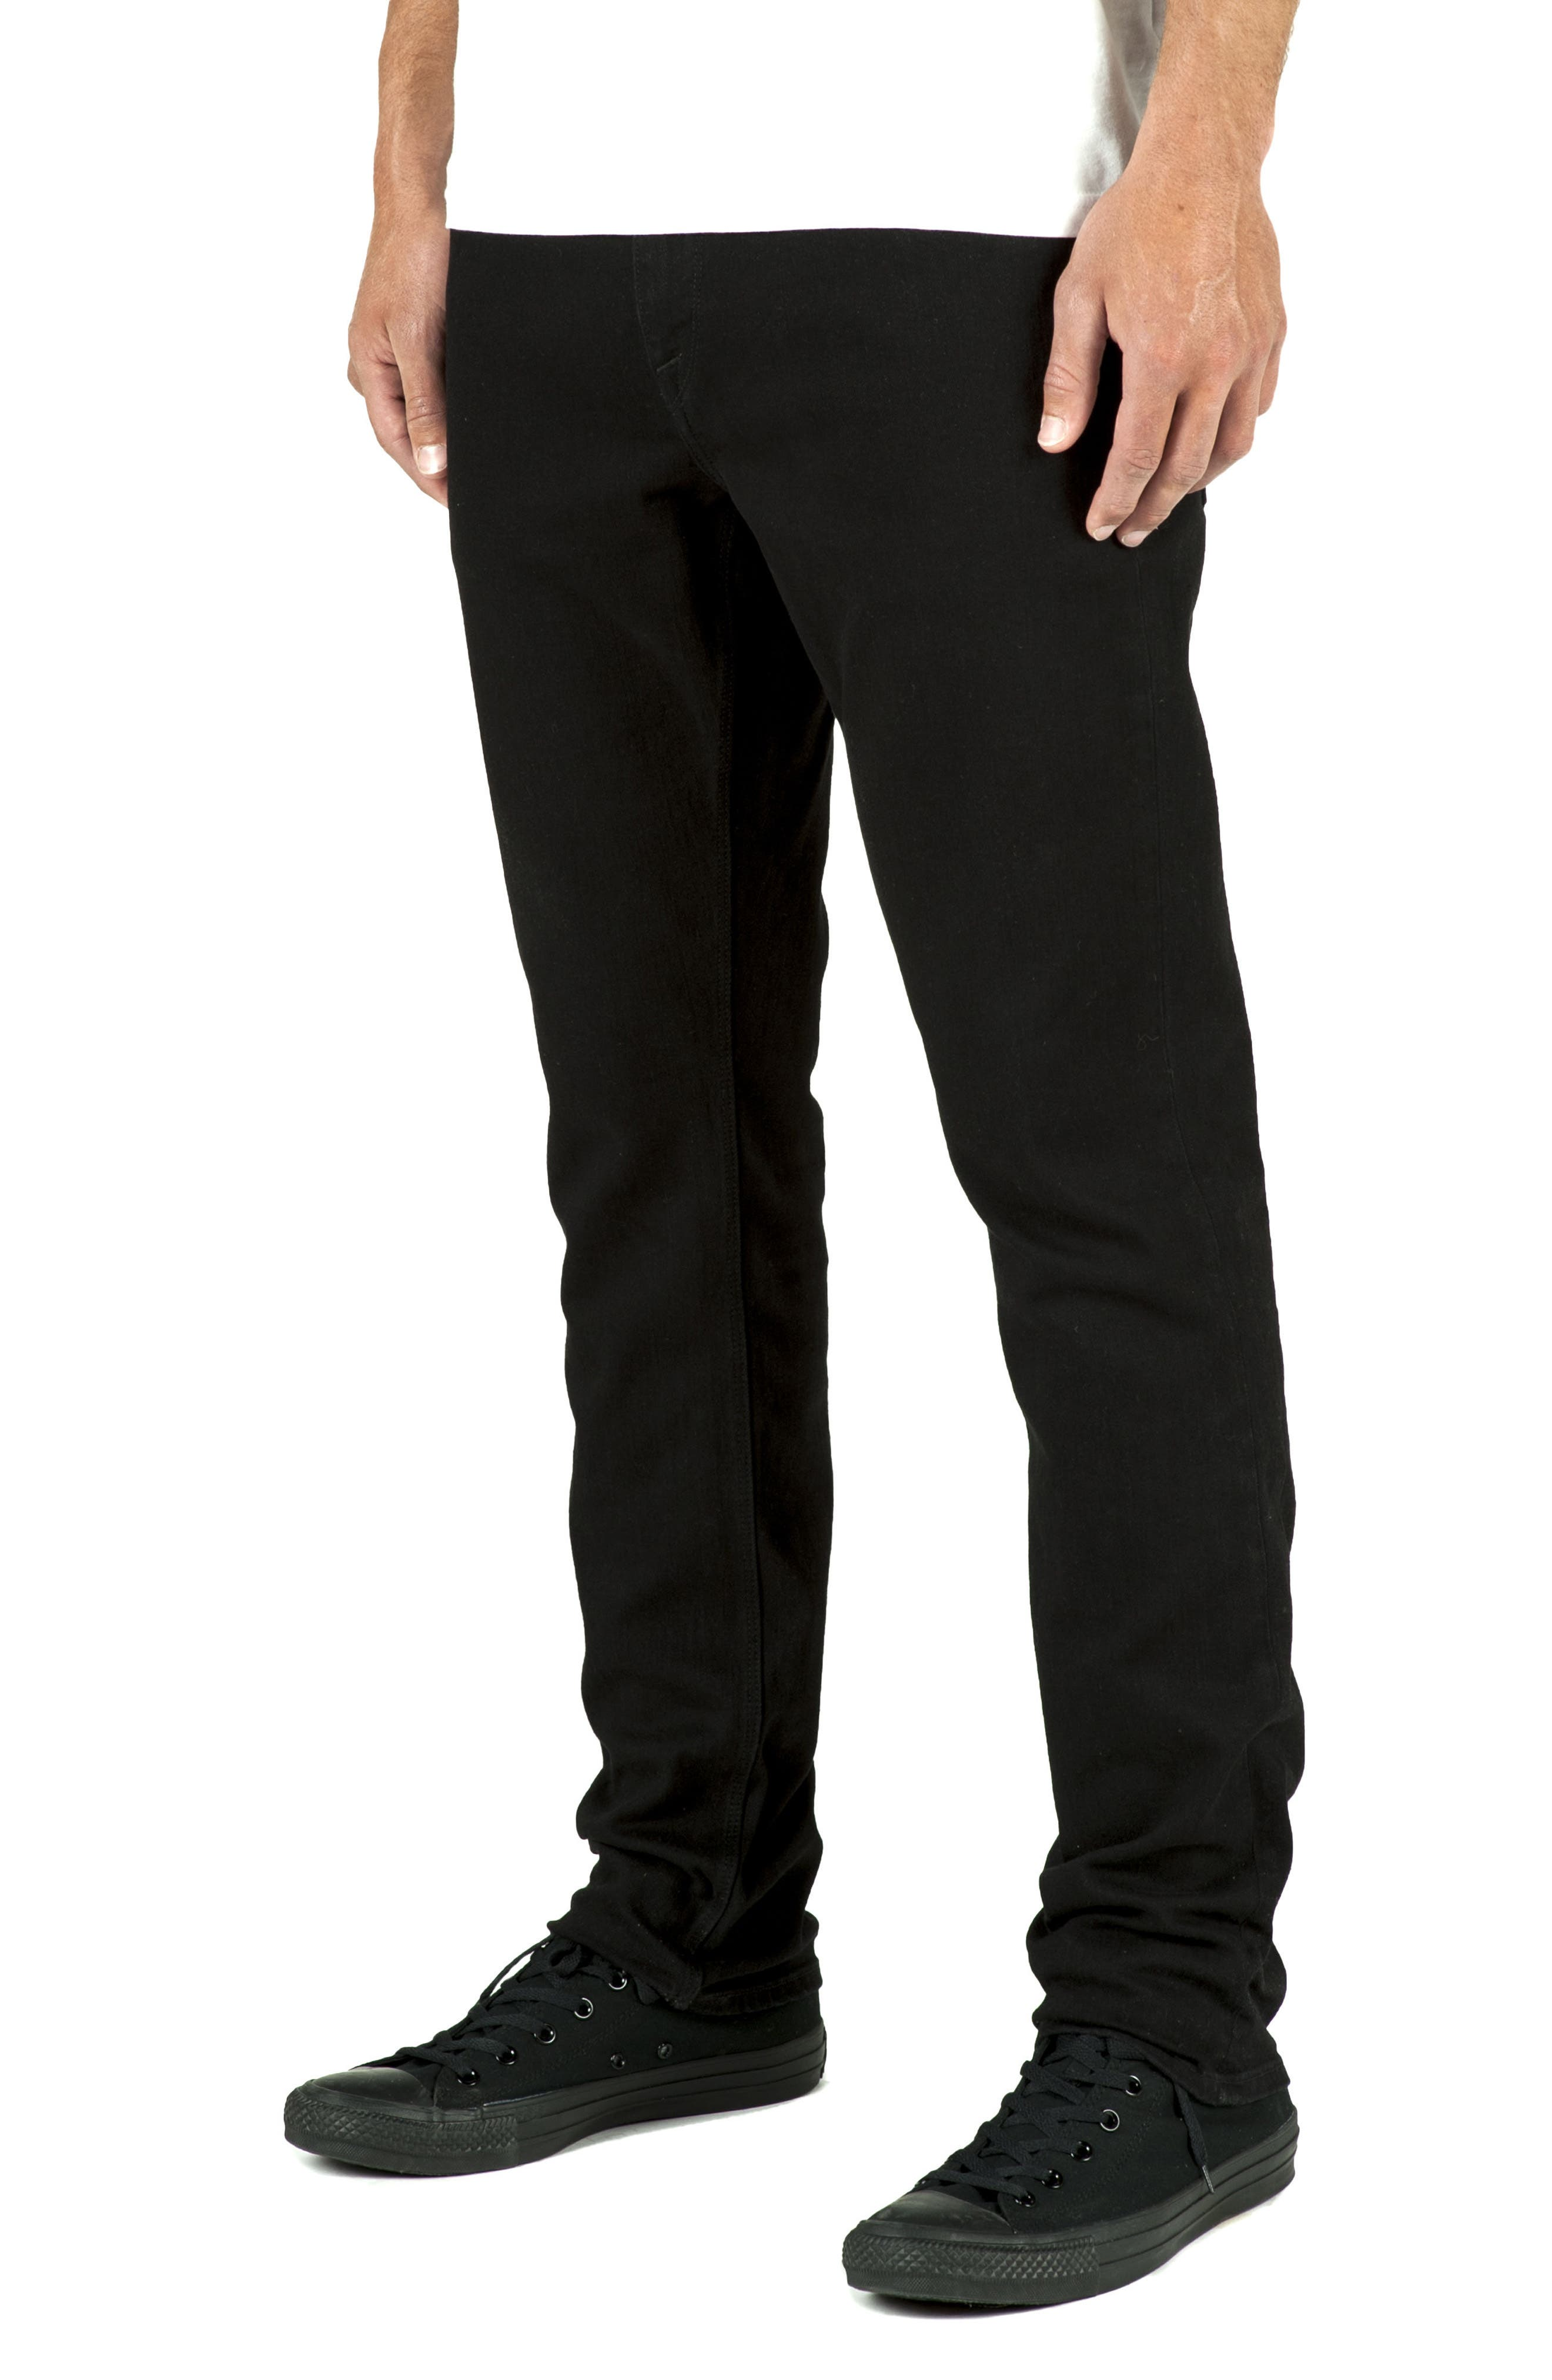 'Solver' Tapered Jeans,                             Alternate thumbnail 9, color,